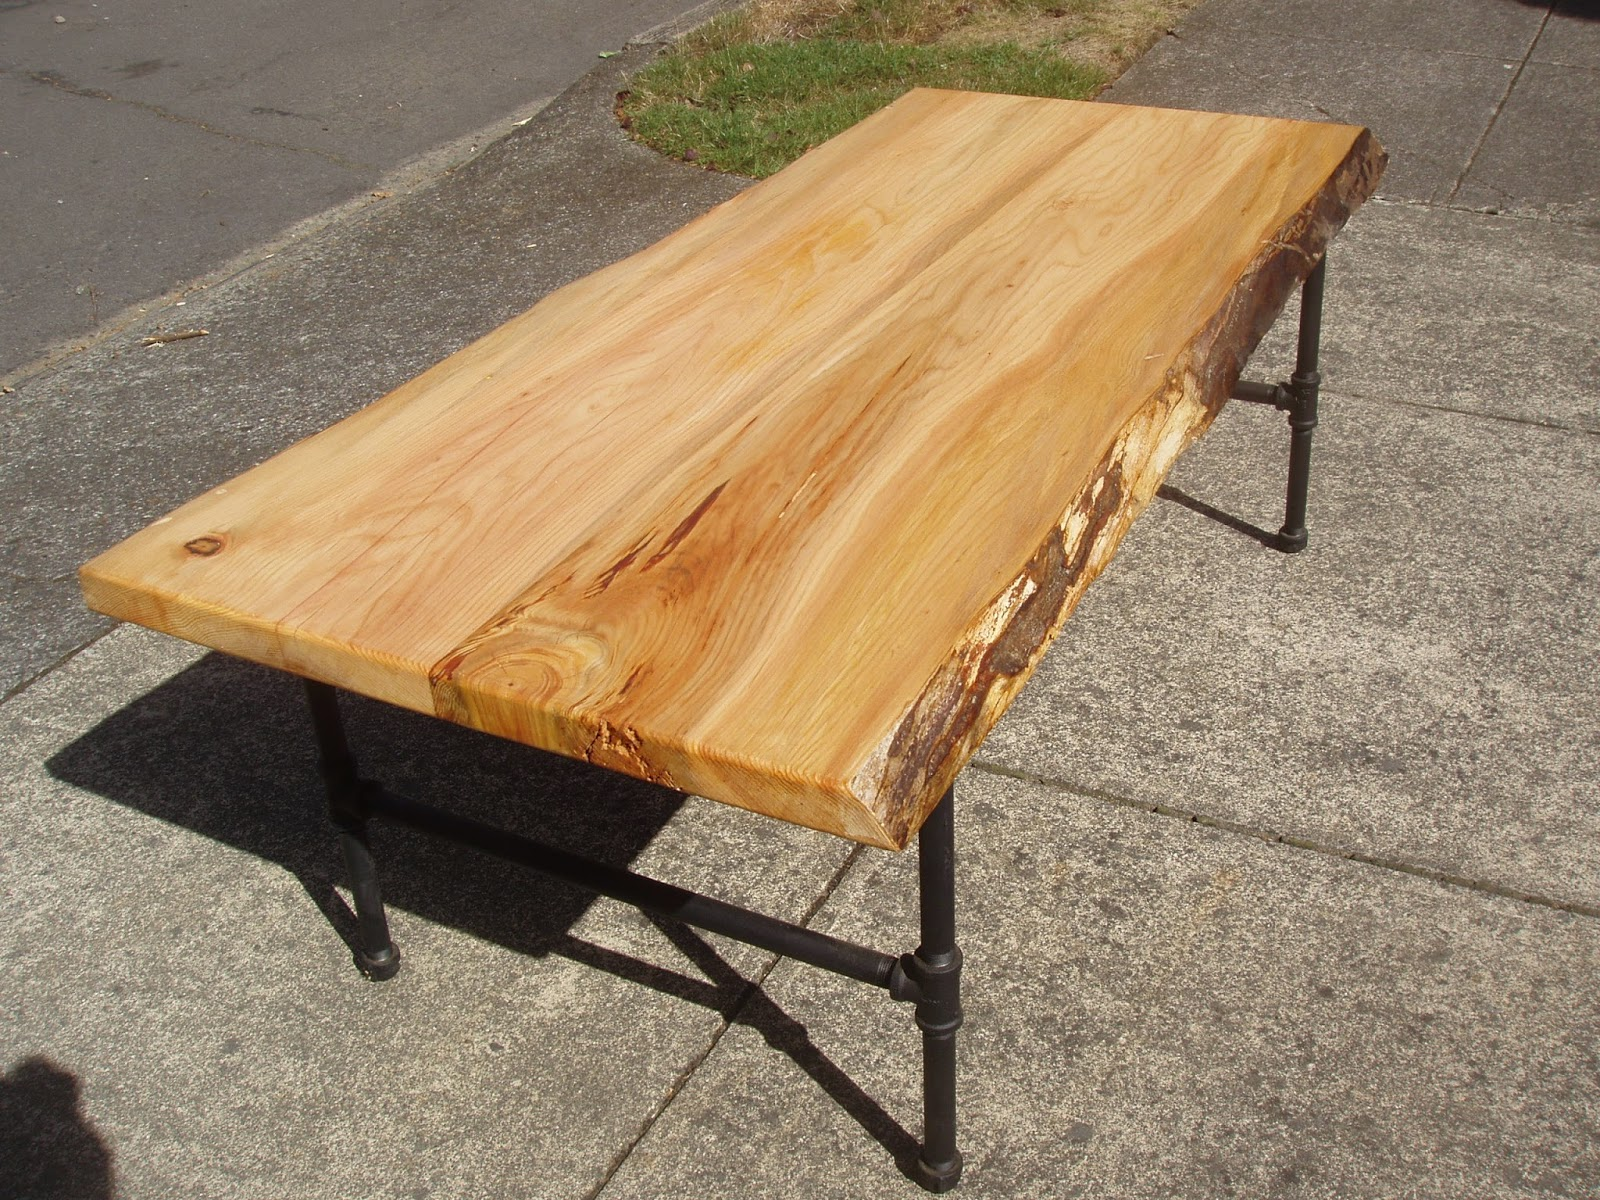 Pnw Live Edge Cedar Coffee Table With Steel Pipe Legs Sold